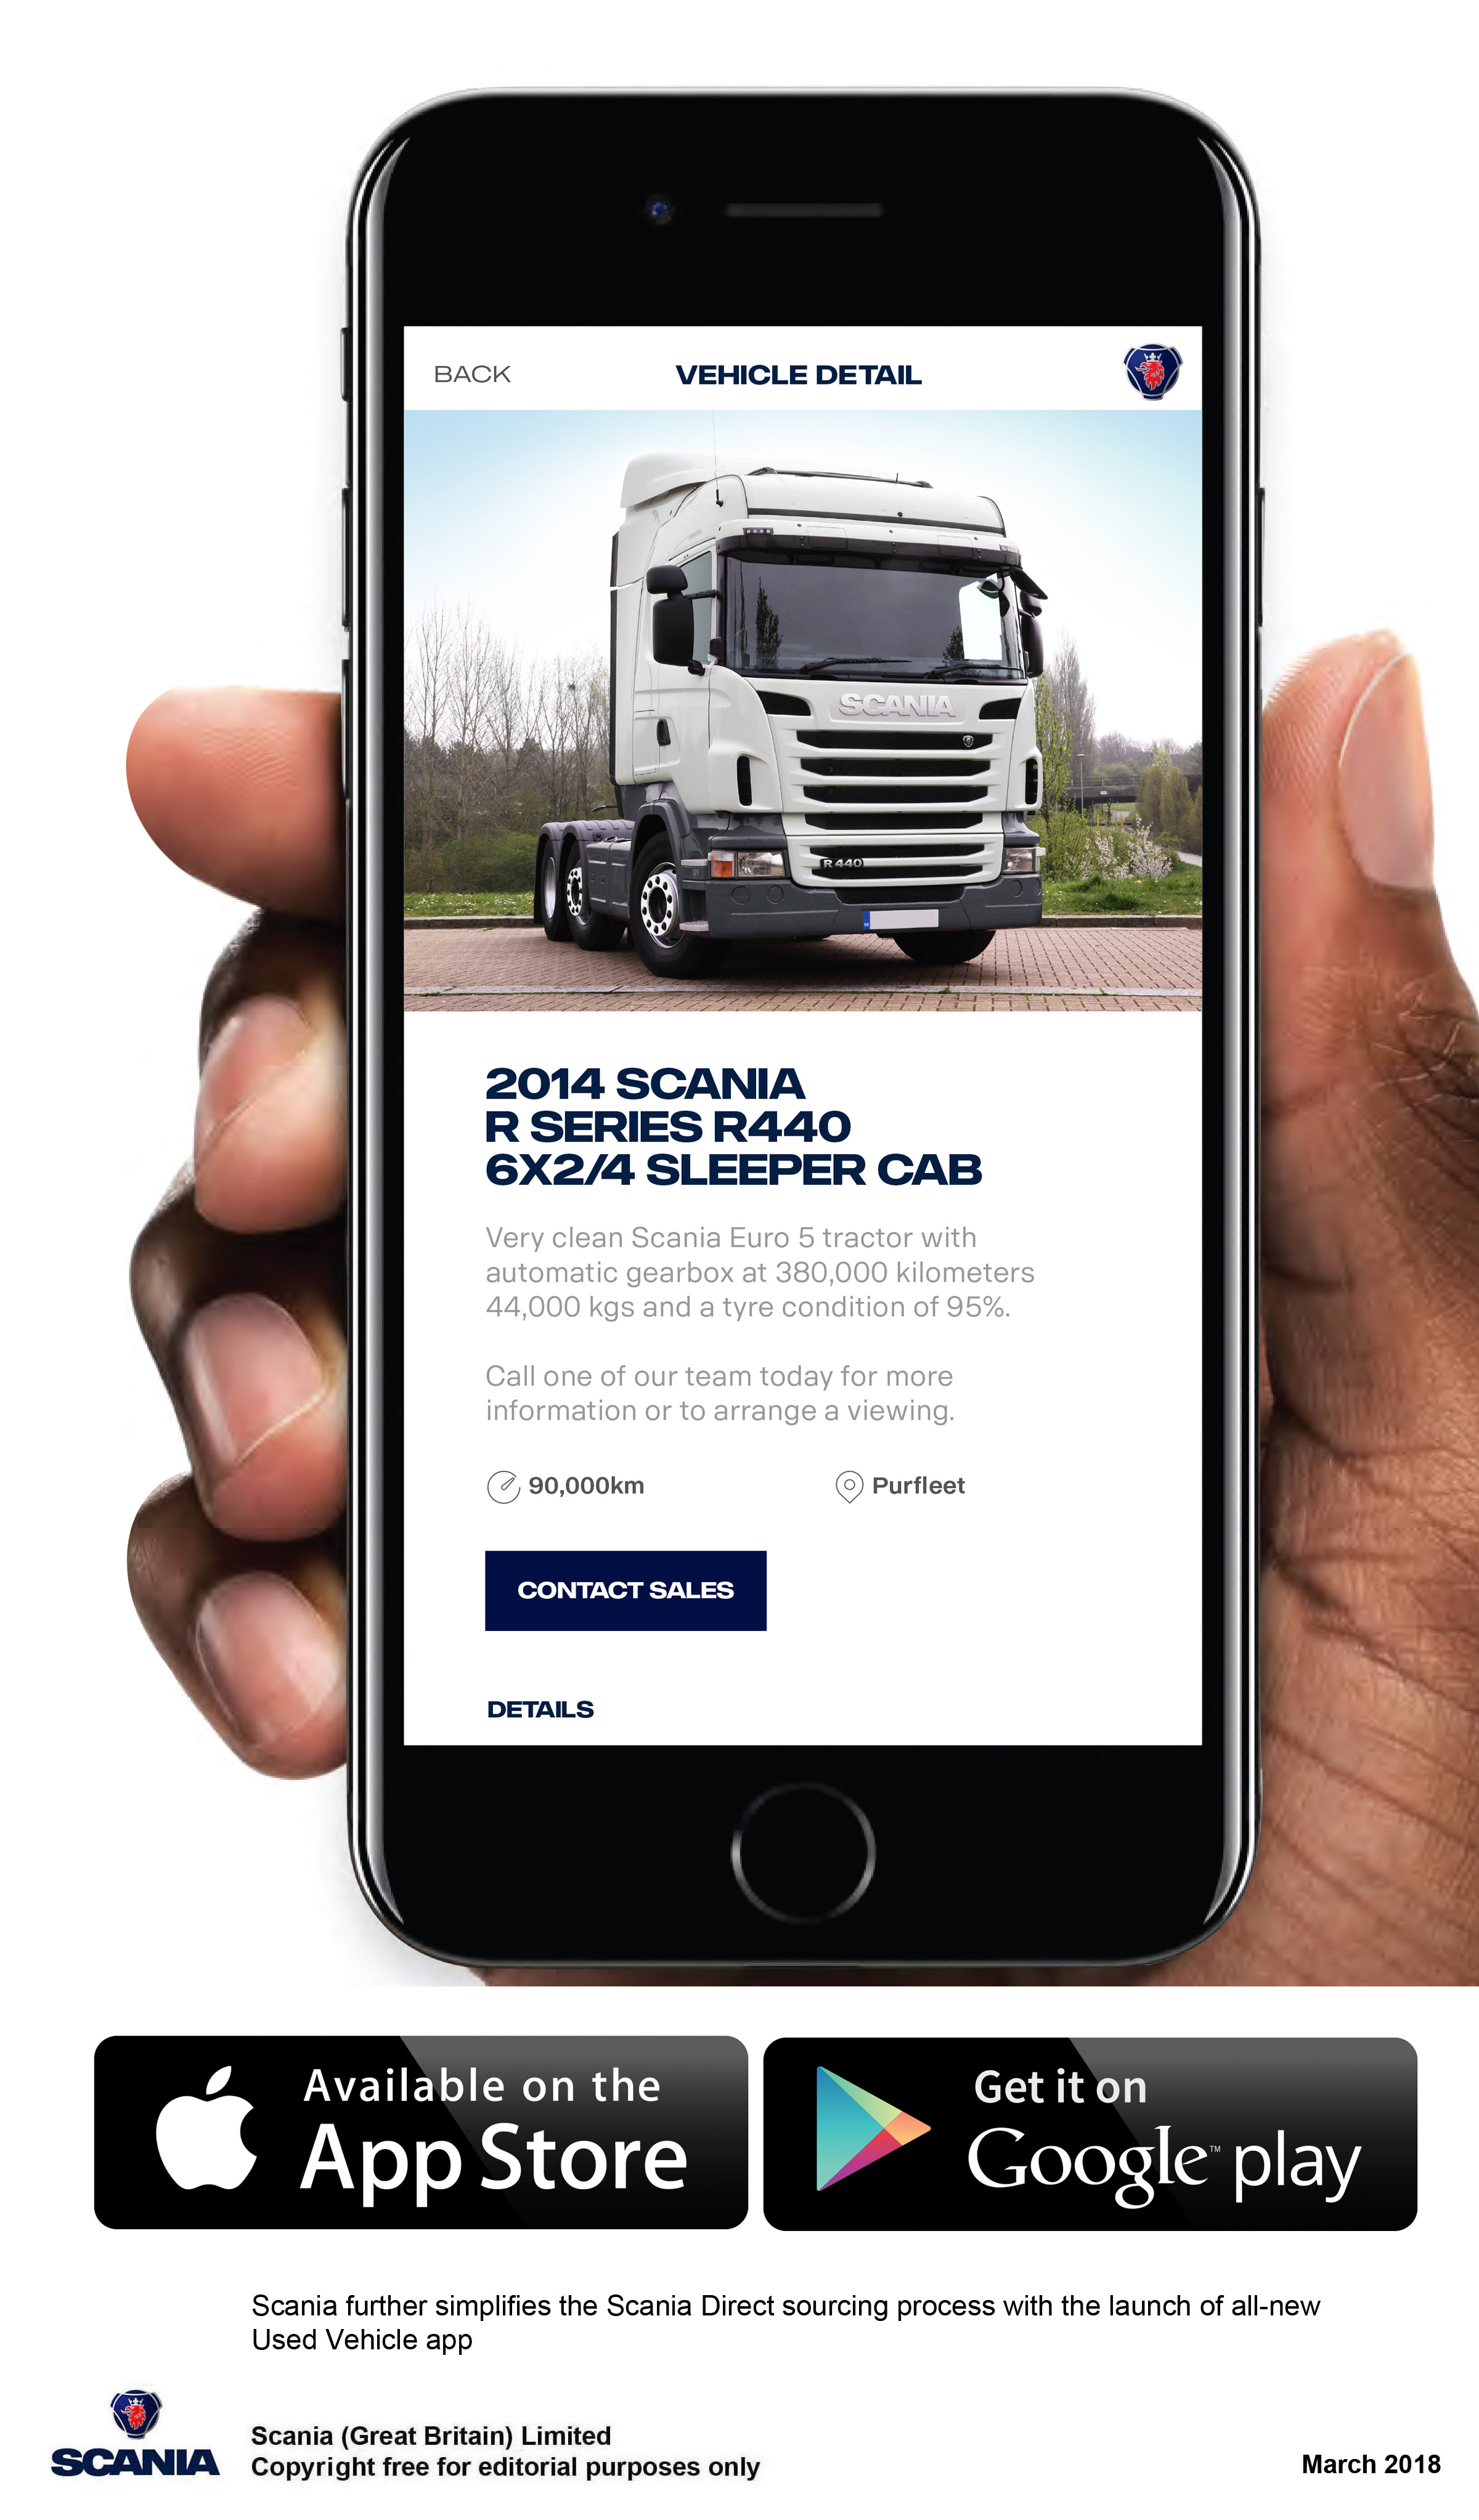 Scania Direct's Used Vehicle App